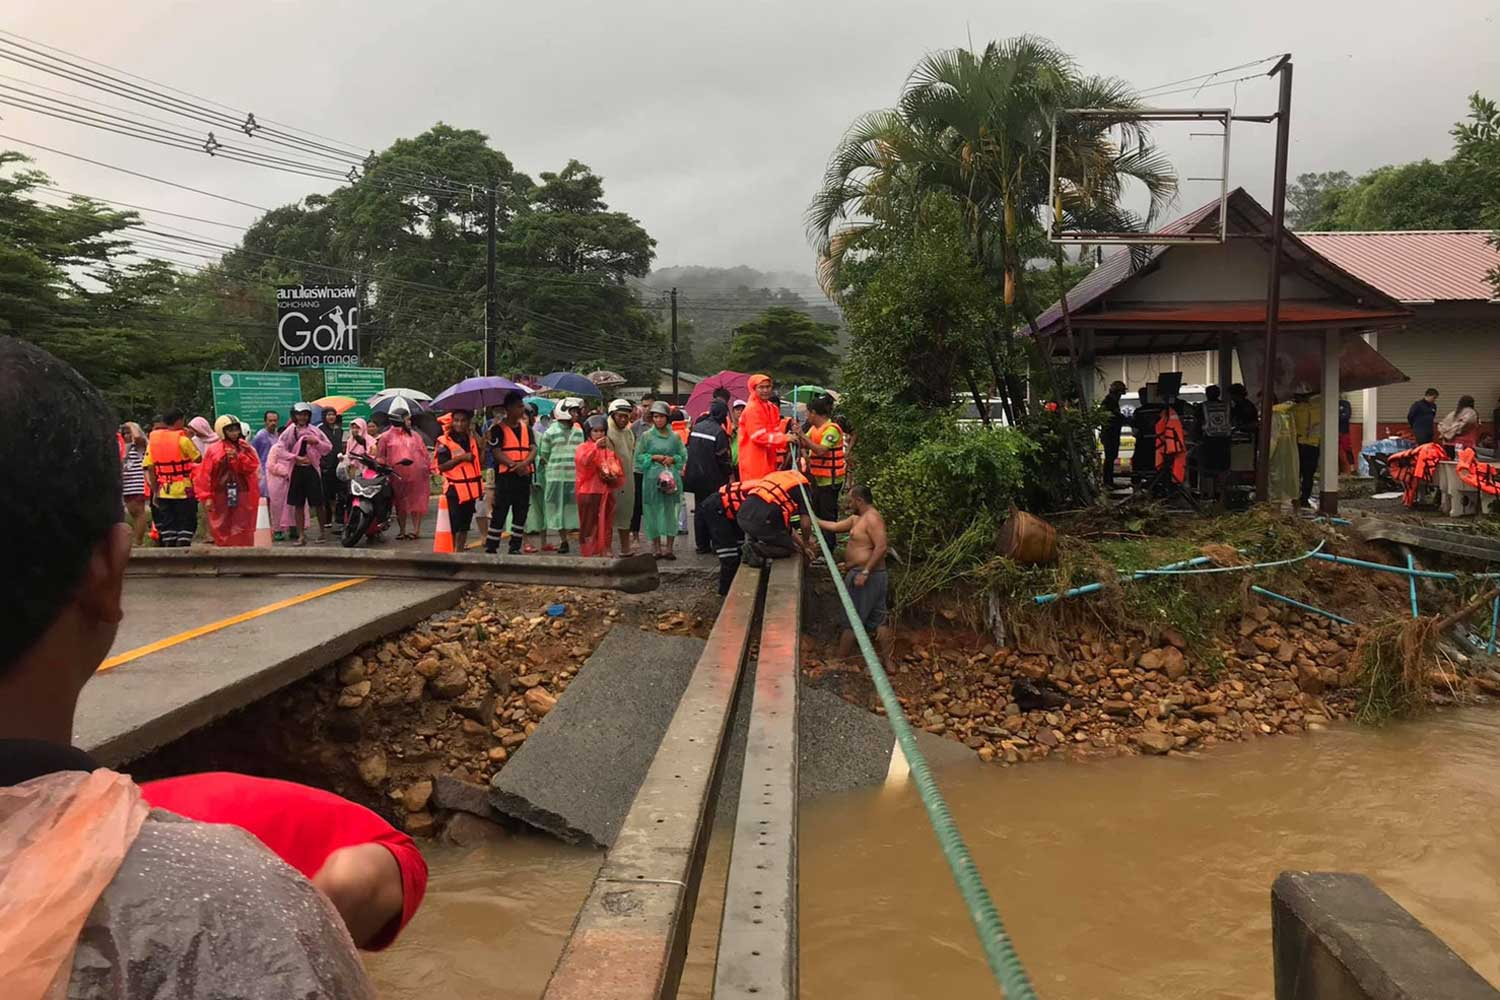 Volunteers secure a rope as a hand-hold for tourists to walk across Khlong Plu canal on a temporary footbridge of power poles, on Koh Chang island in Trat province on Monday. The vehicle bridge was washed out by flooding caused by torrential rain. (Photo by Jakkrit Waewkraihong)